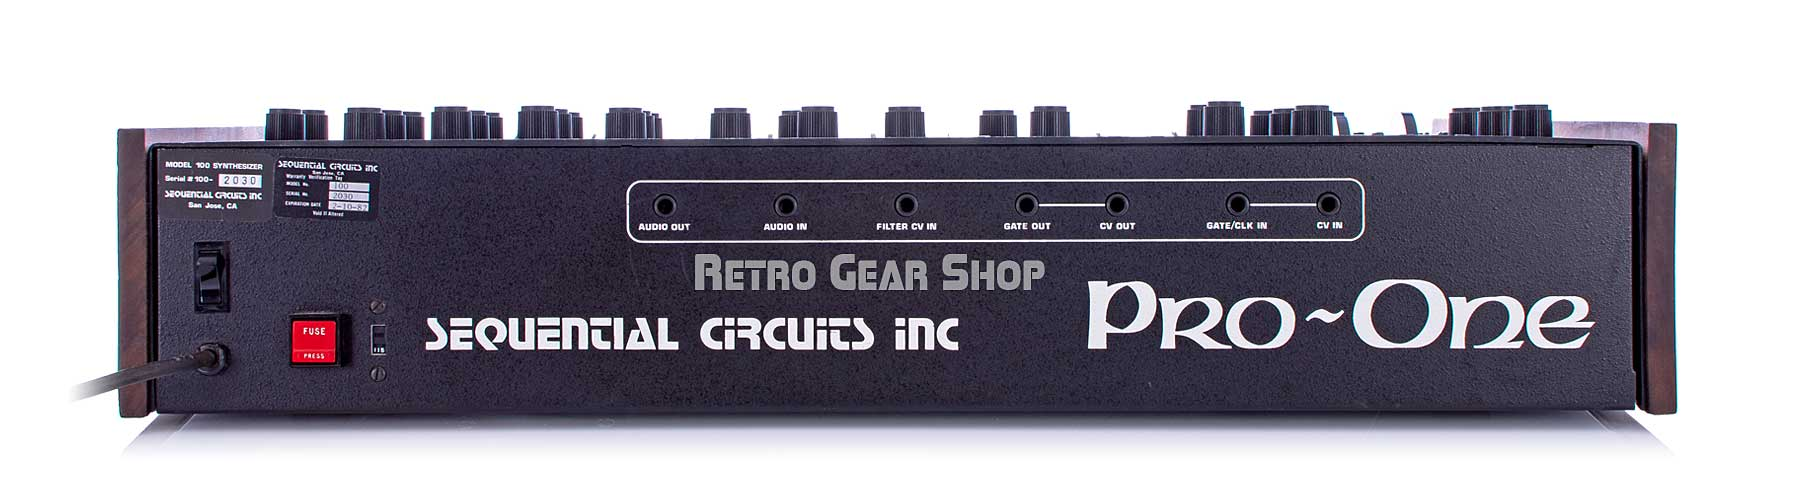 Sequential Circuits Pro One J-Wire Rear